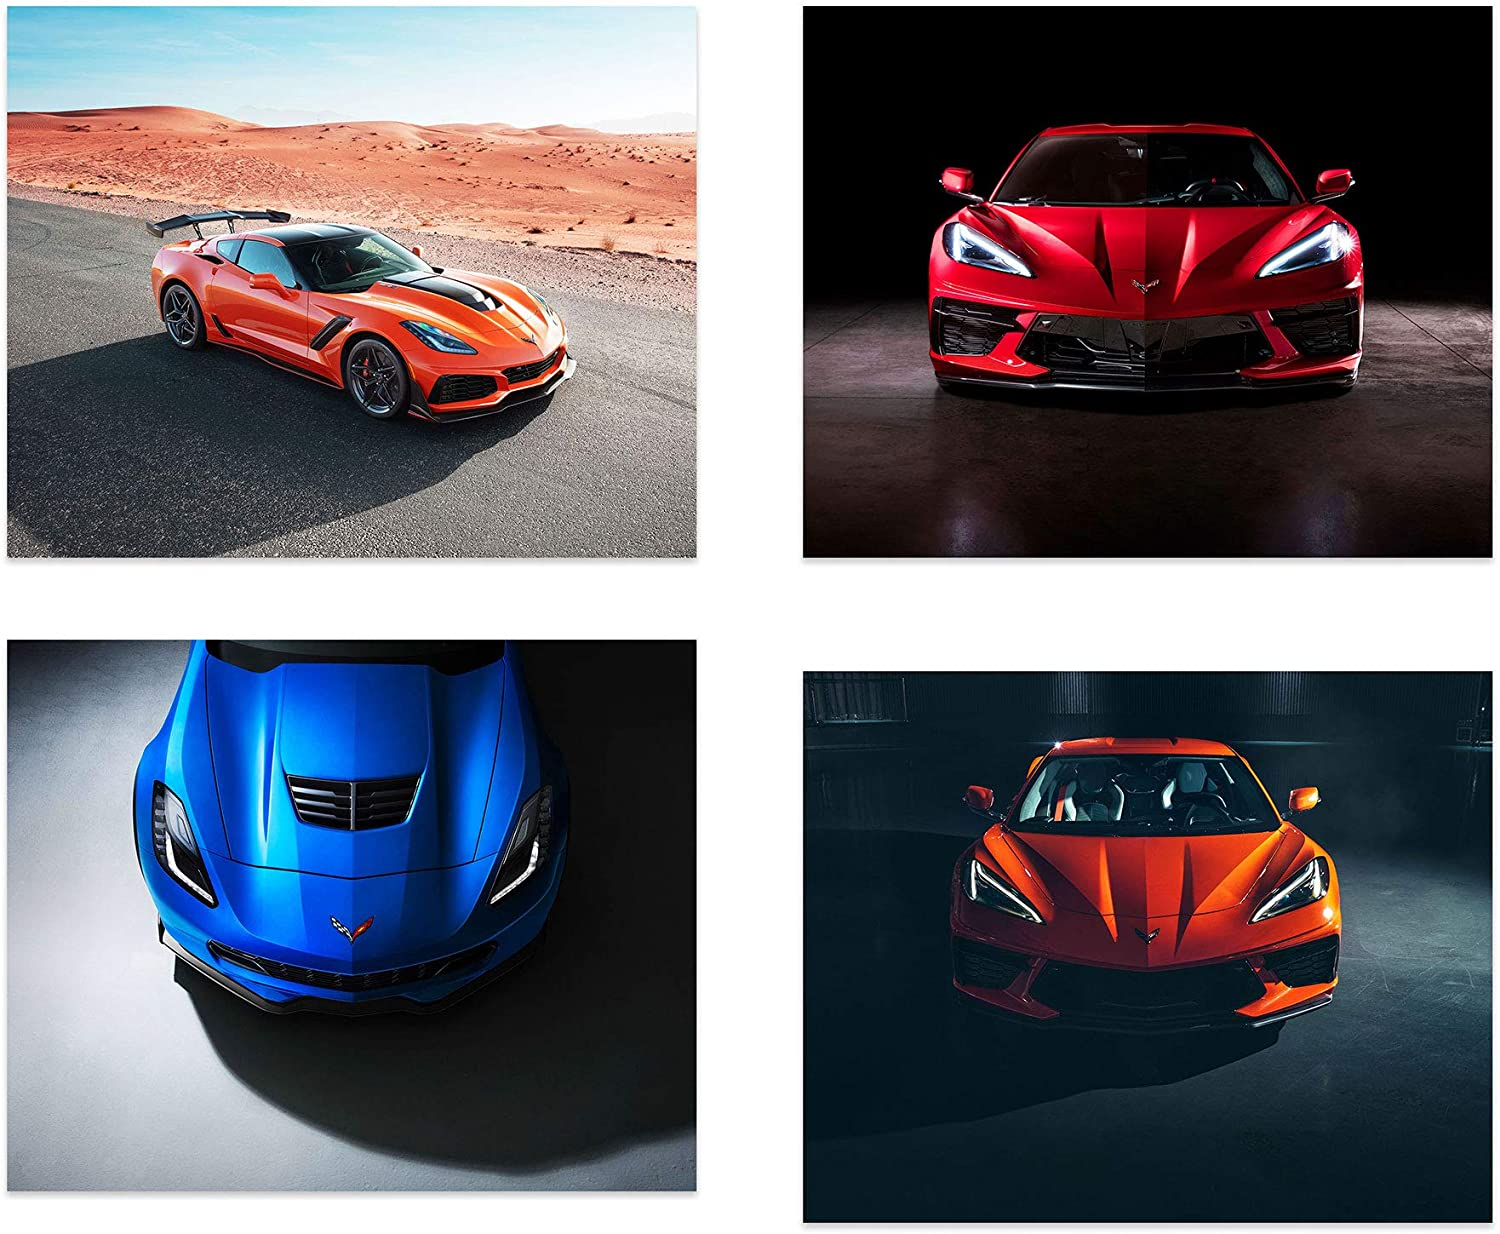 Corvette Car Poster Prints - Set of 4 Unframed (10 inches x 8 inches) Sports Car Wall Art - Z06 - 2020 Stingray - ZR1 - Sportscar Wall Art for Men Boys Teen Bedroom Decor, Gifts, Office, Supercar